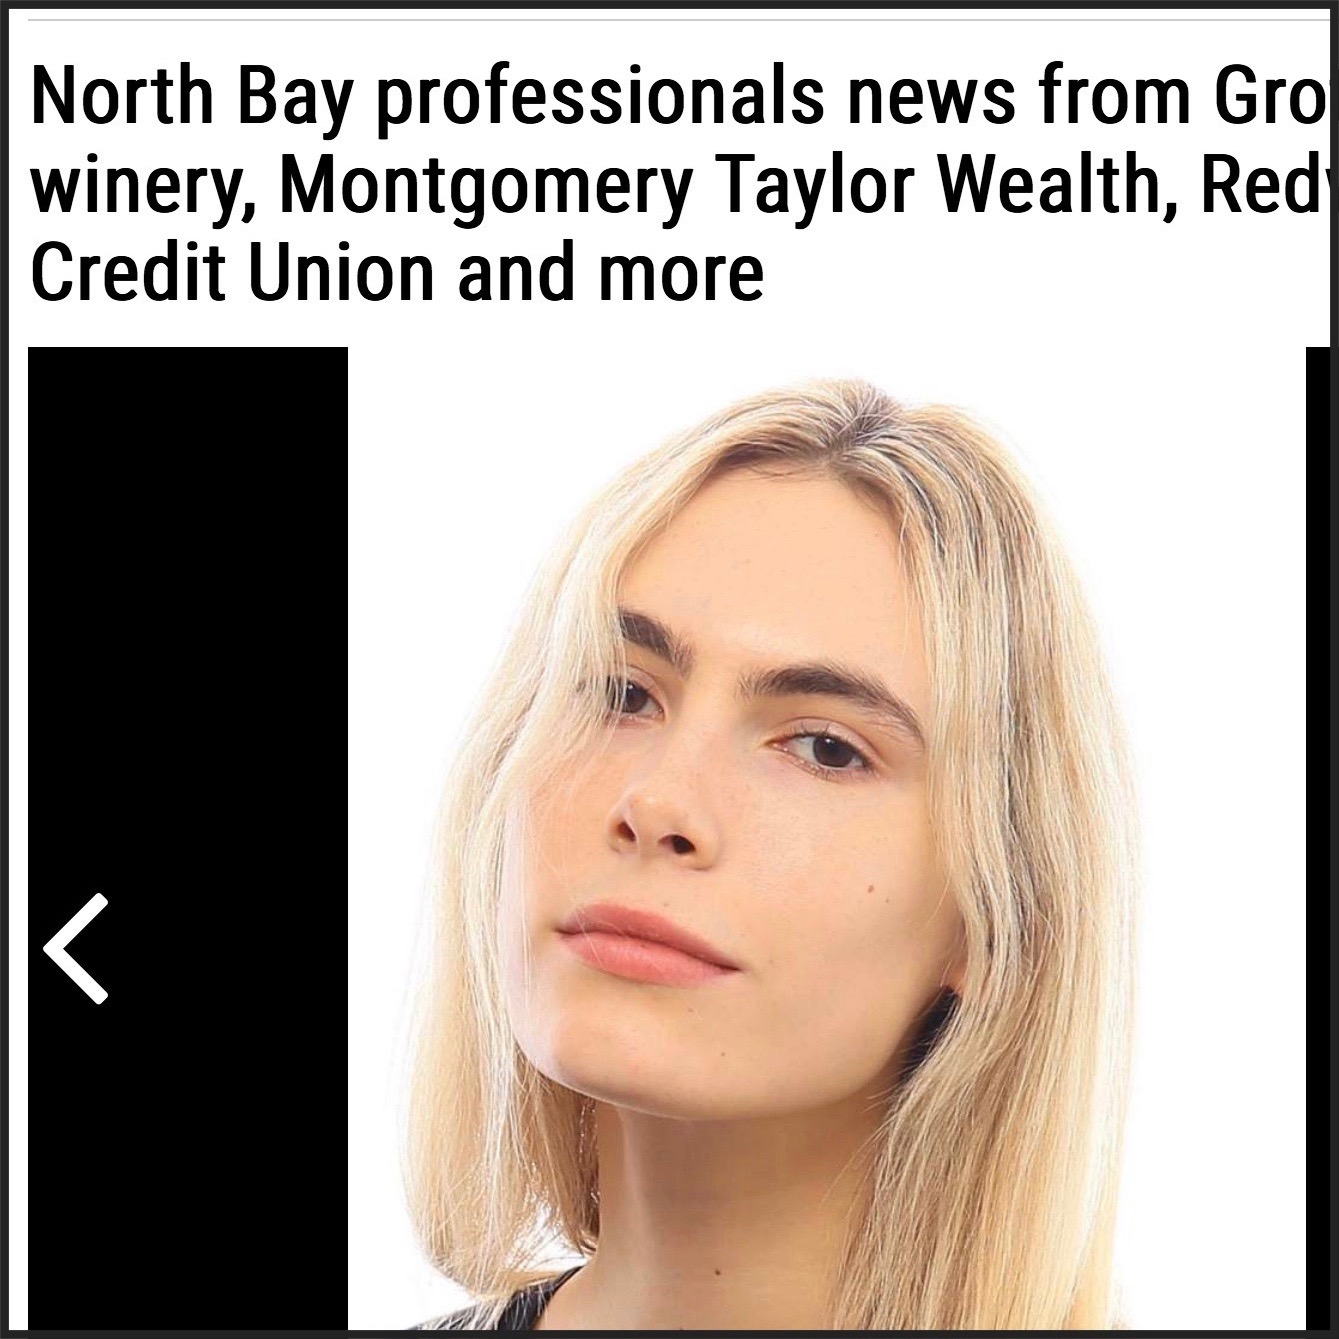 Logan in THE NORTH BAY BUSINESS JOURNAL